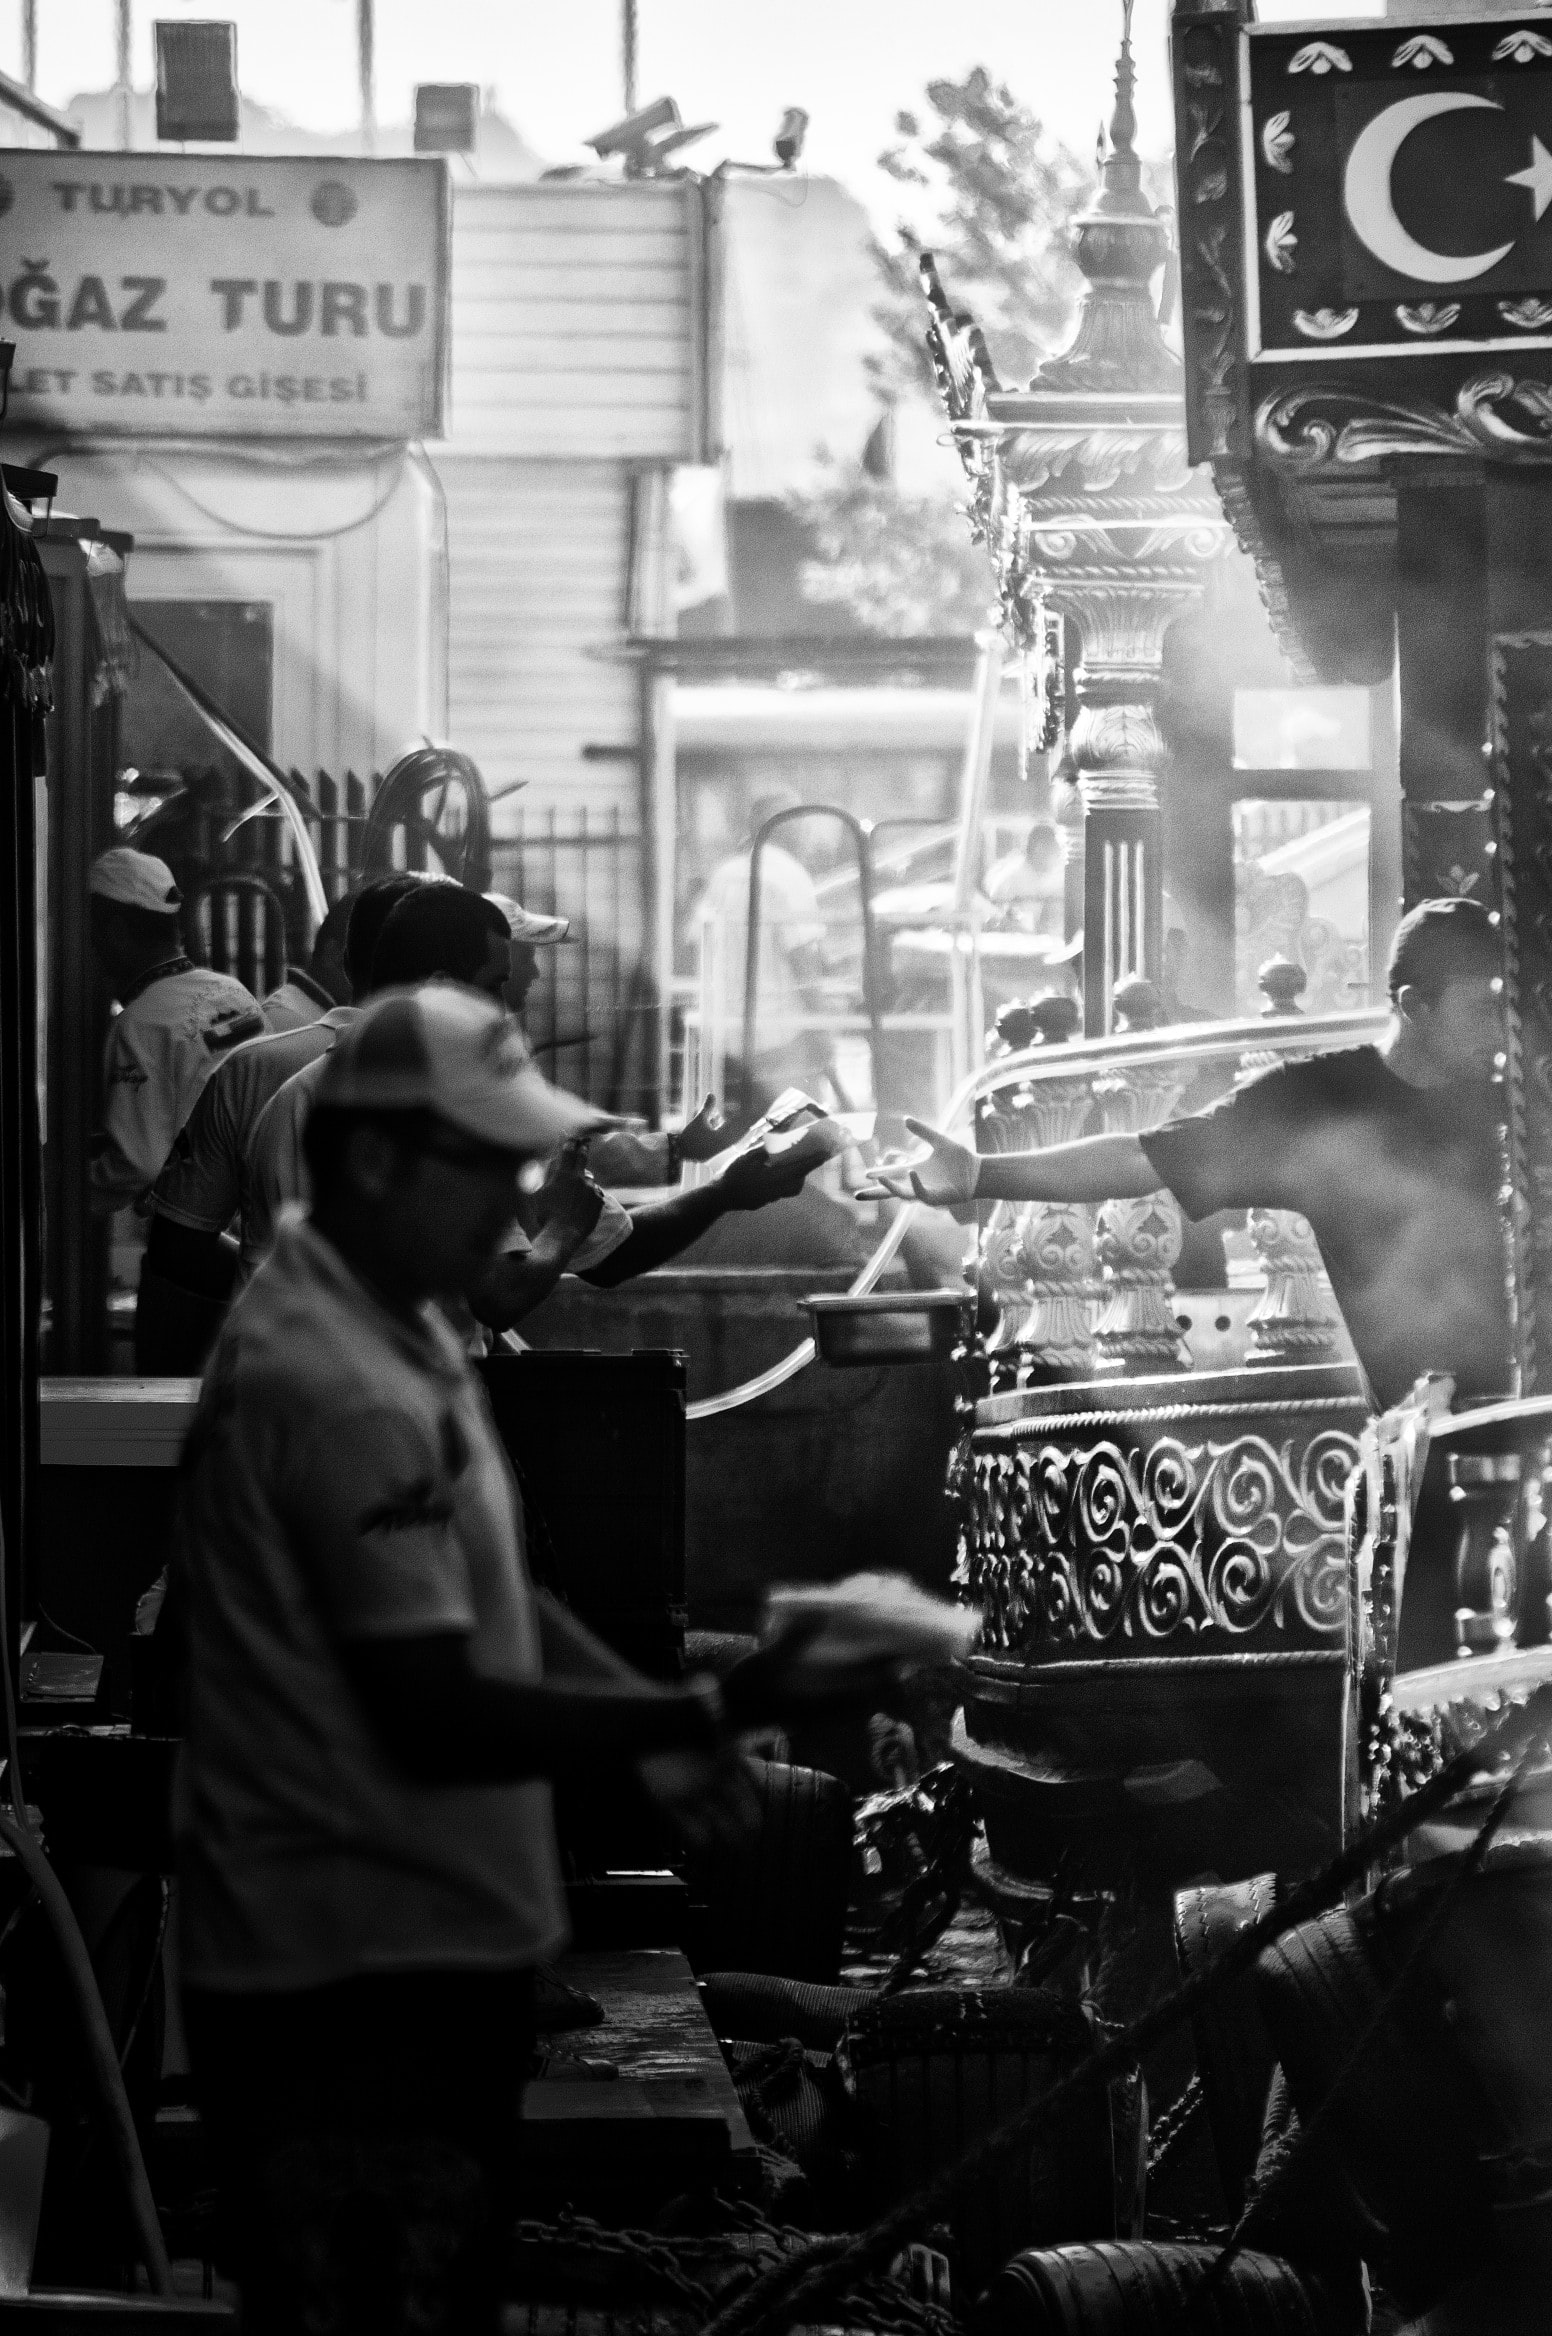 man giving man box in grayscale photography